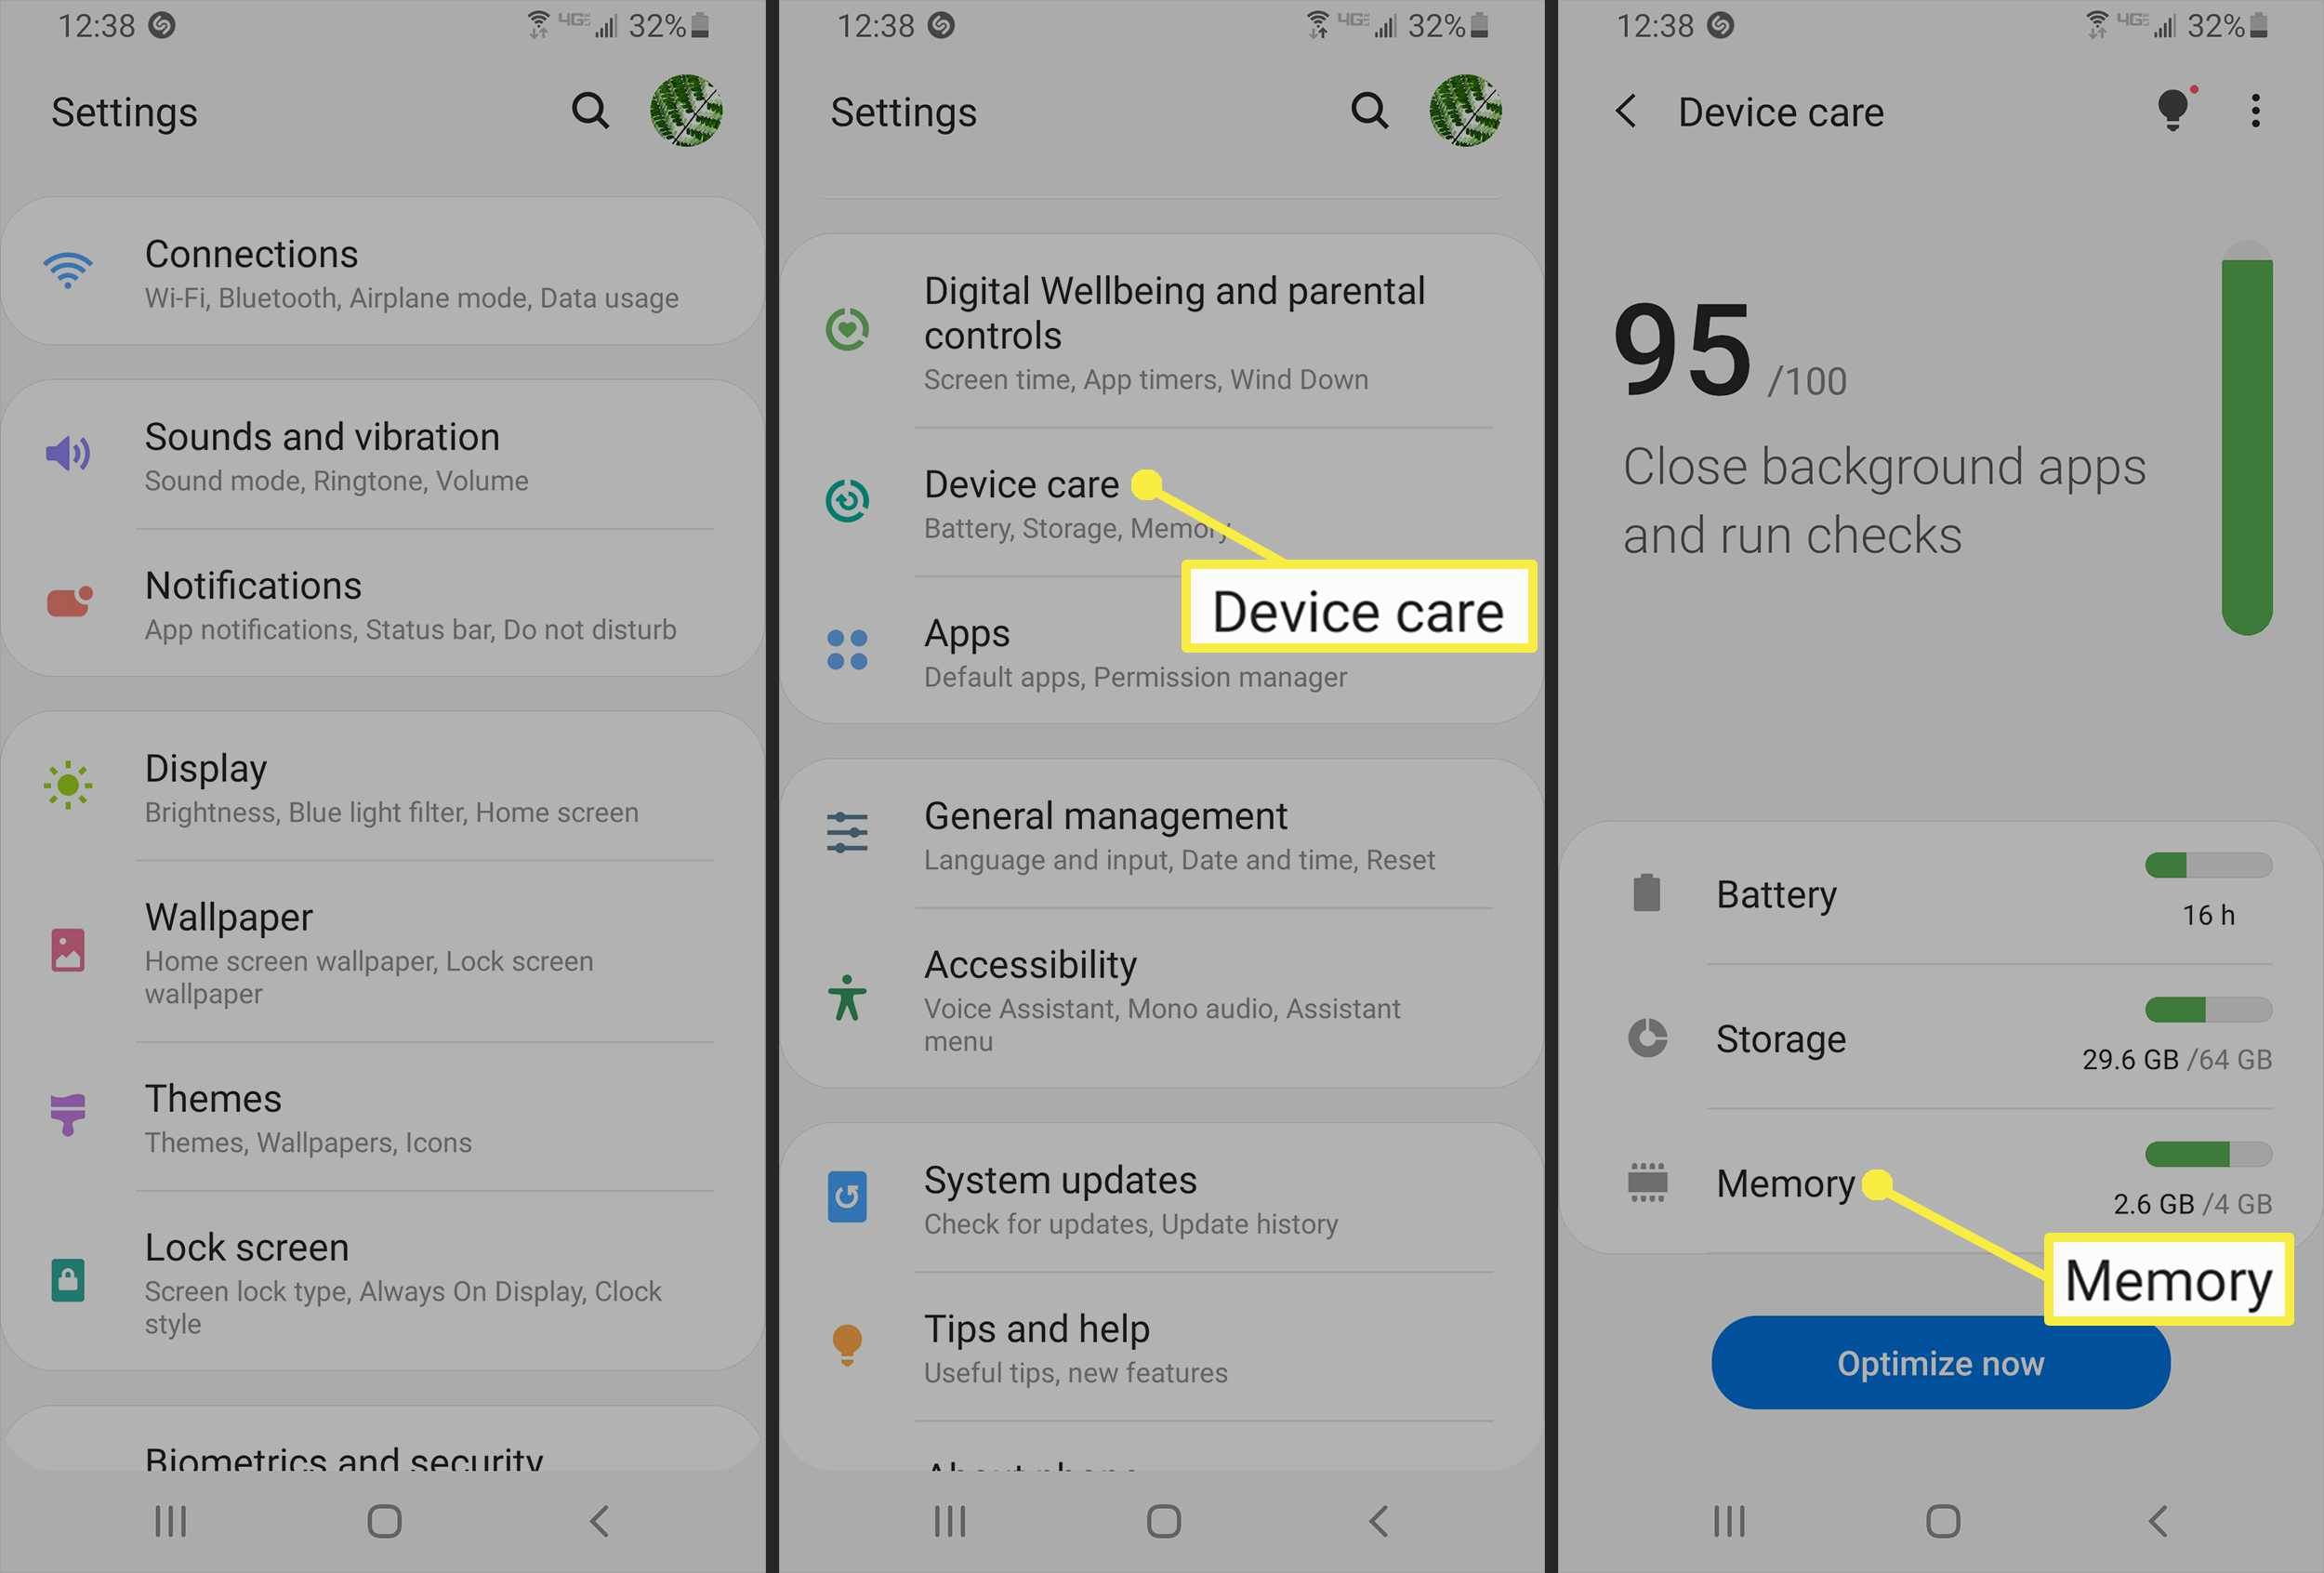 Samsung S9 Device Care settings.